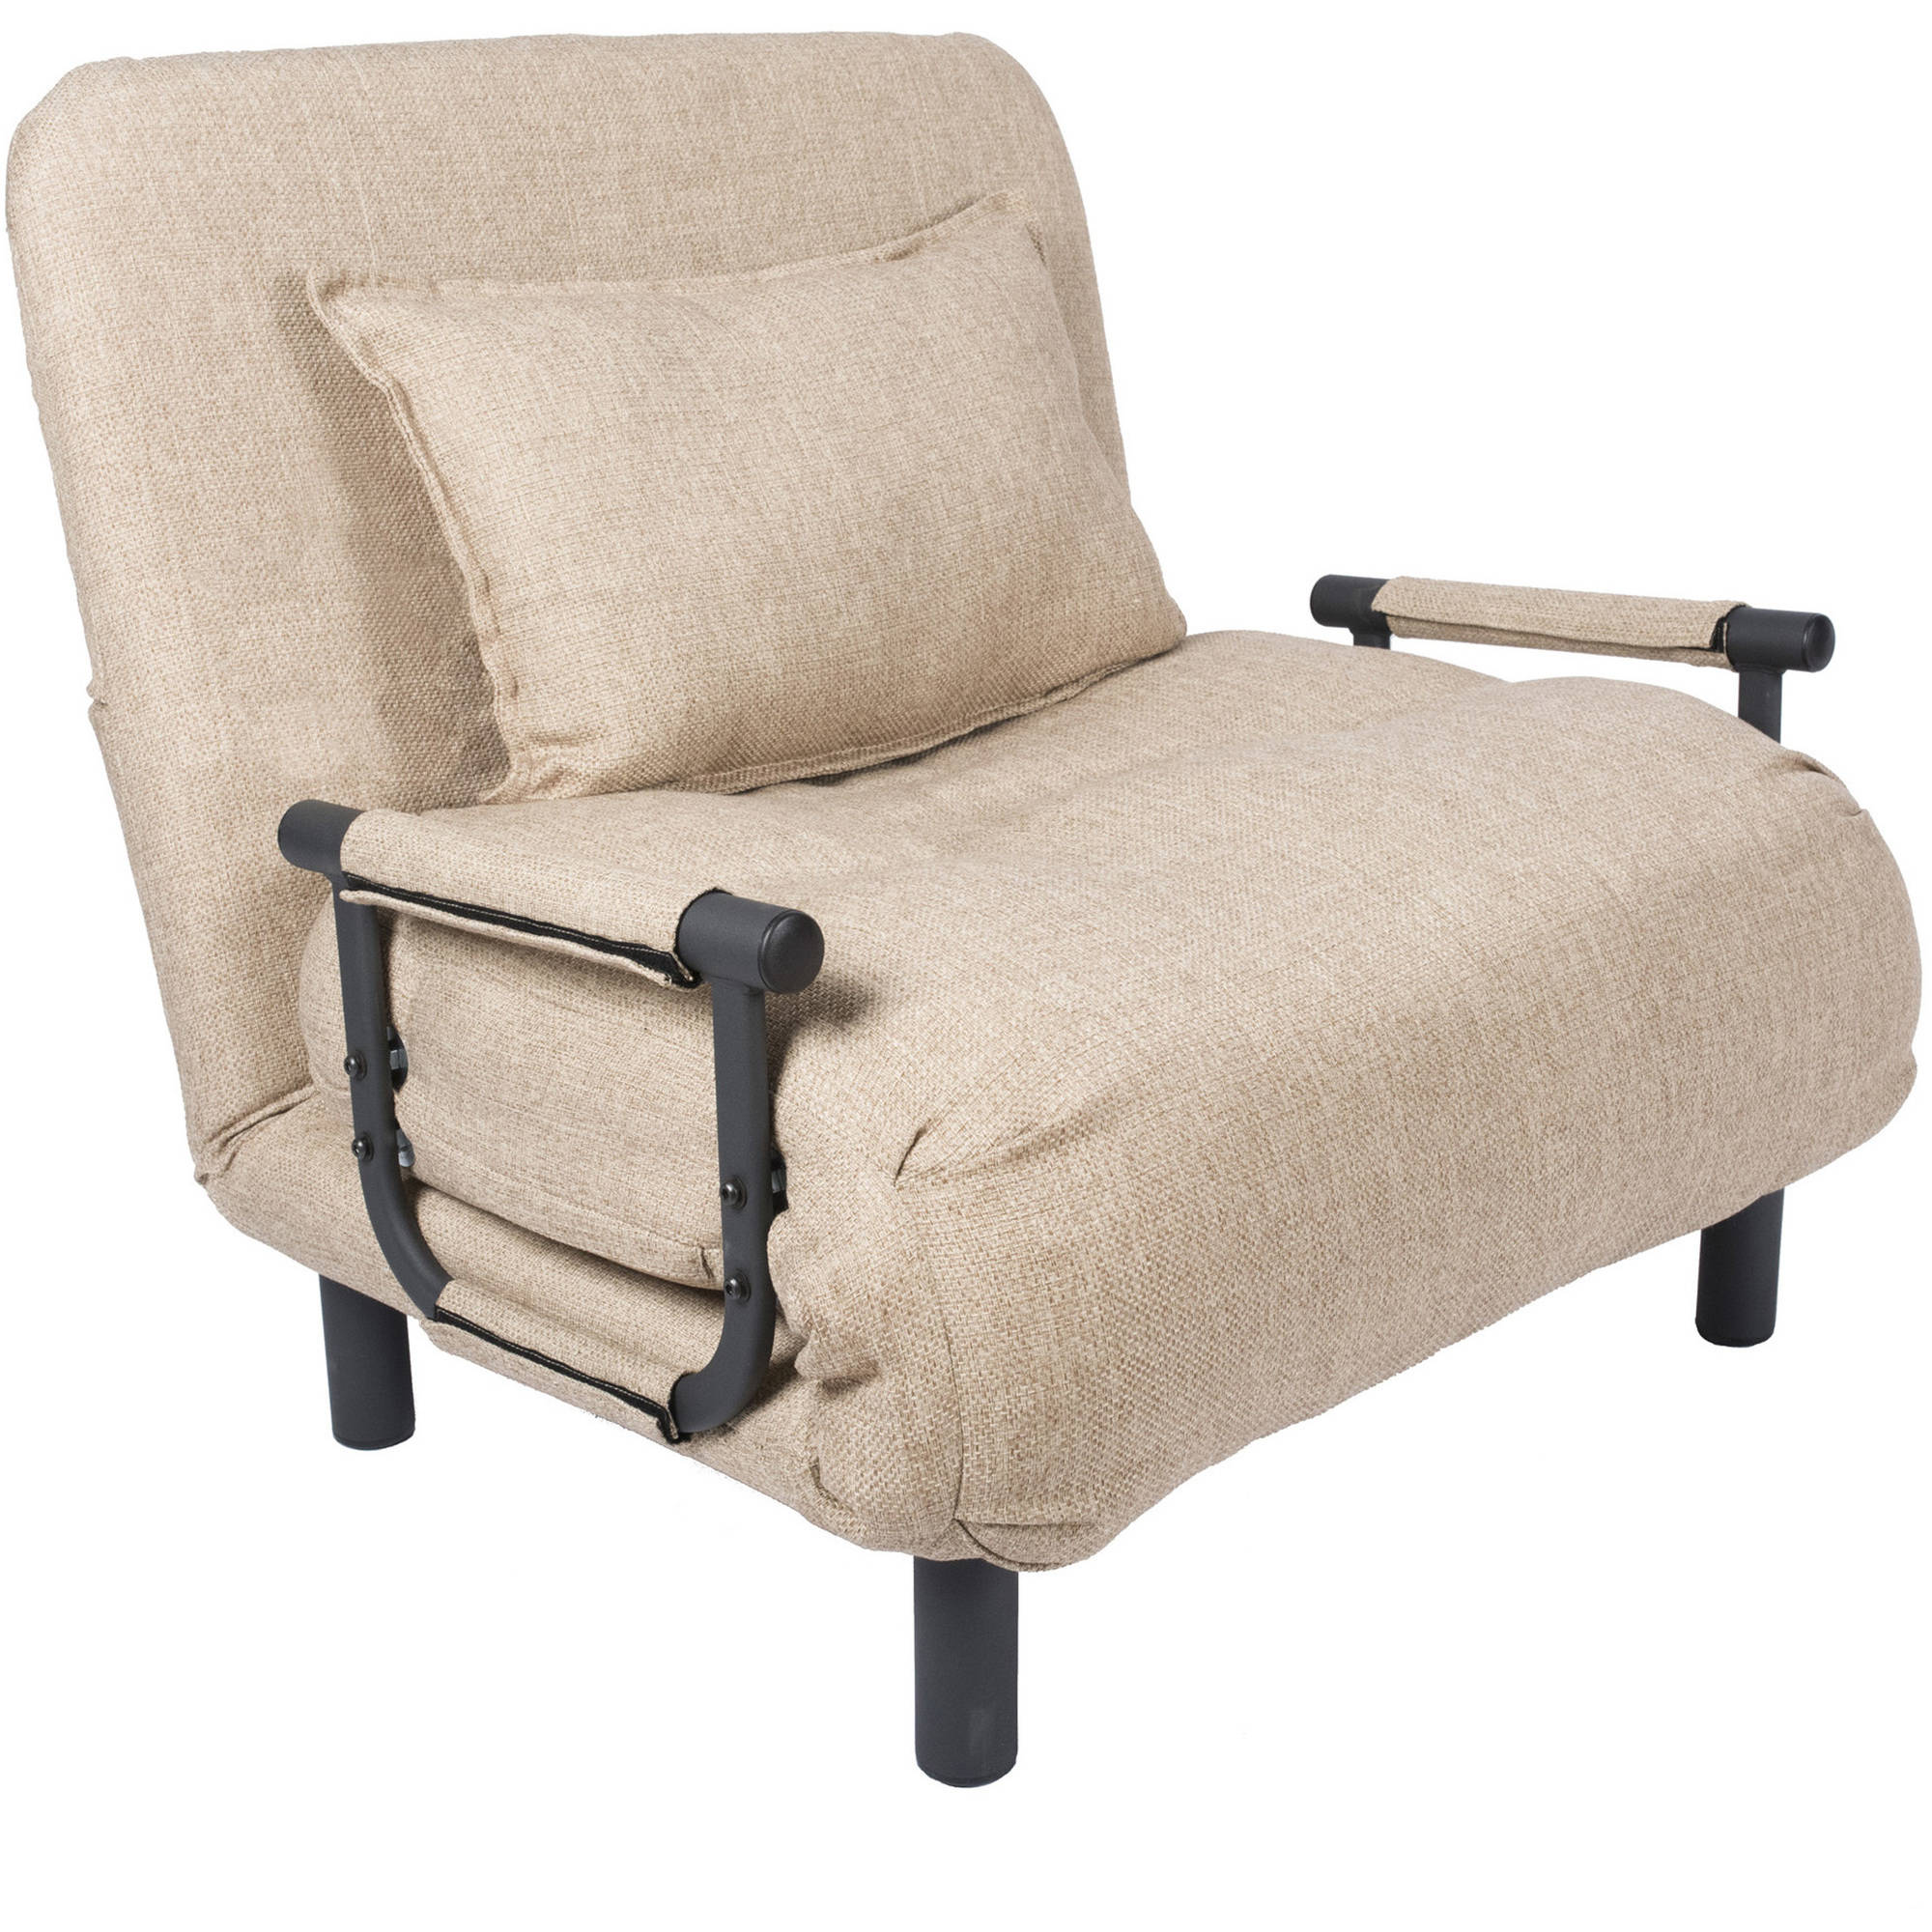 Pragma Single Sleeper Convertible Chair, Multiple Colors